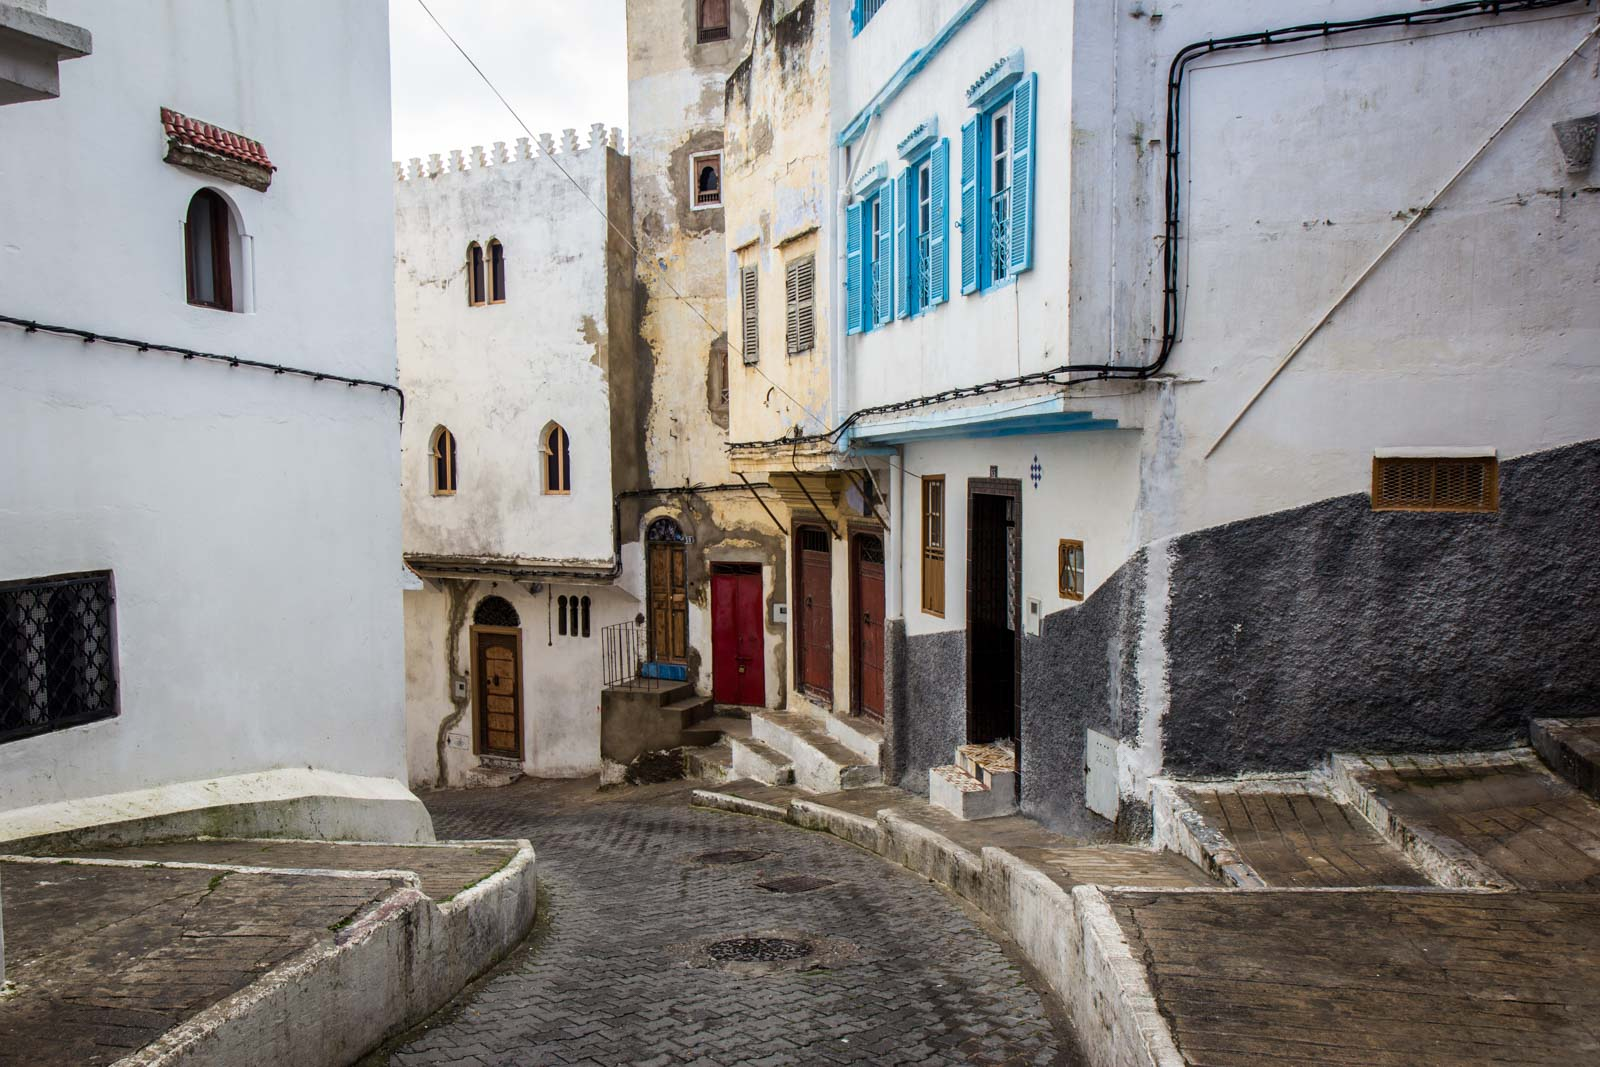 The Alchemist in Tangier, Morocco